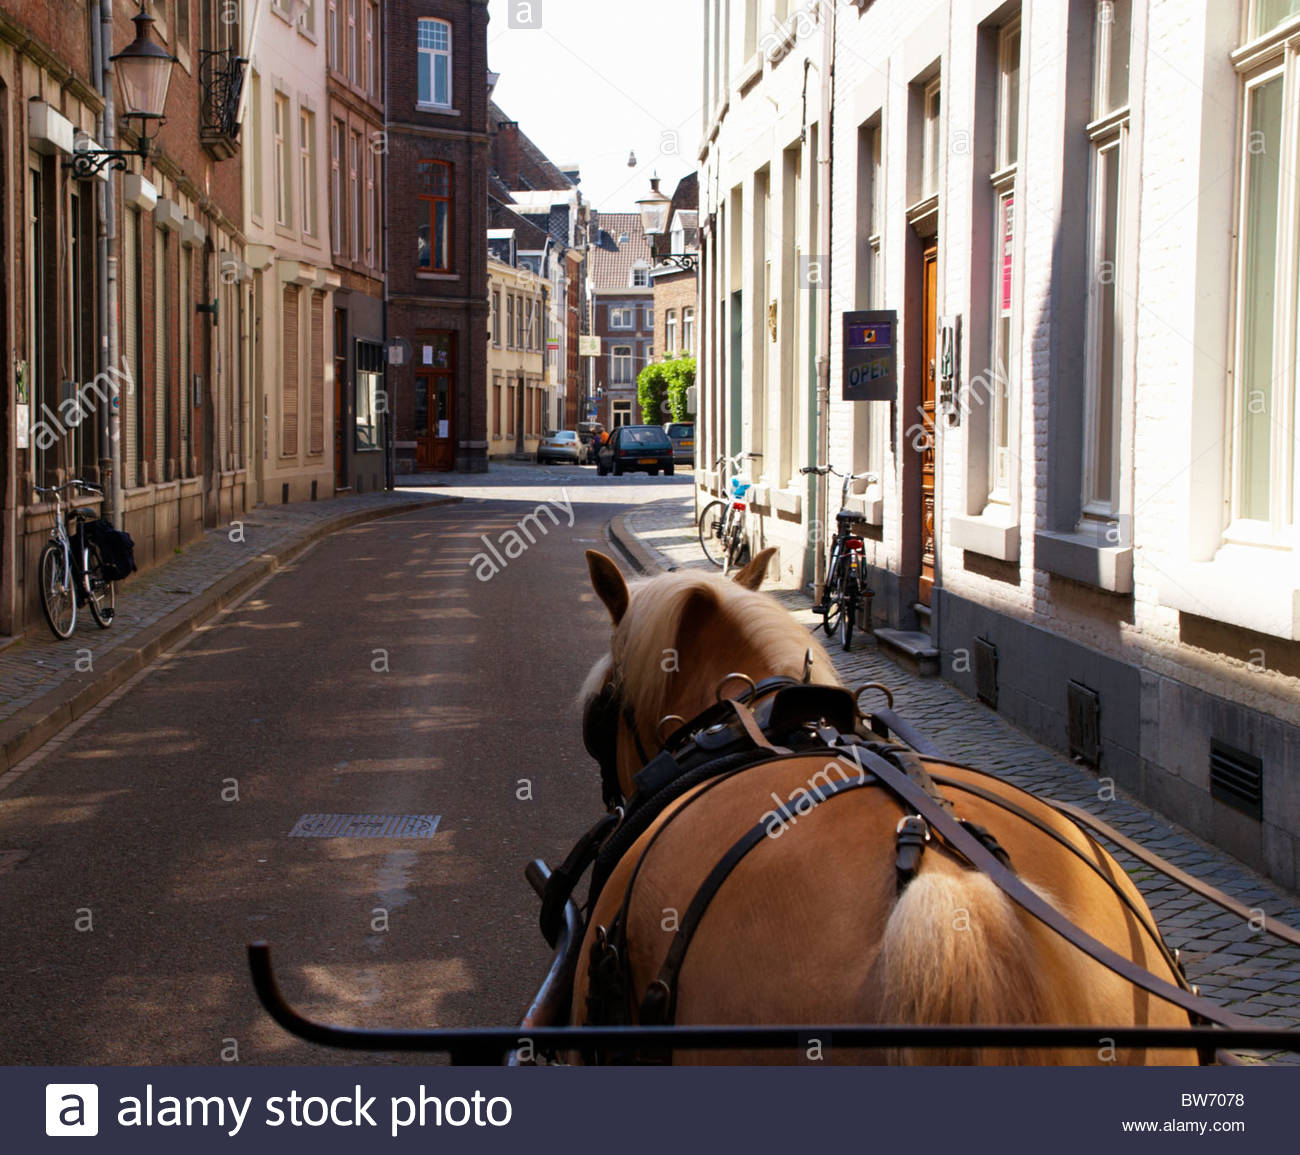 pony and trap sightseeing around the backstreets of maastricht limburg netherlands - Stock Image